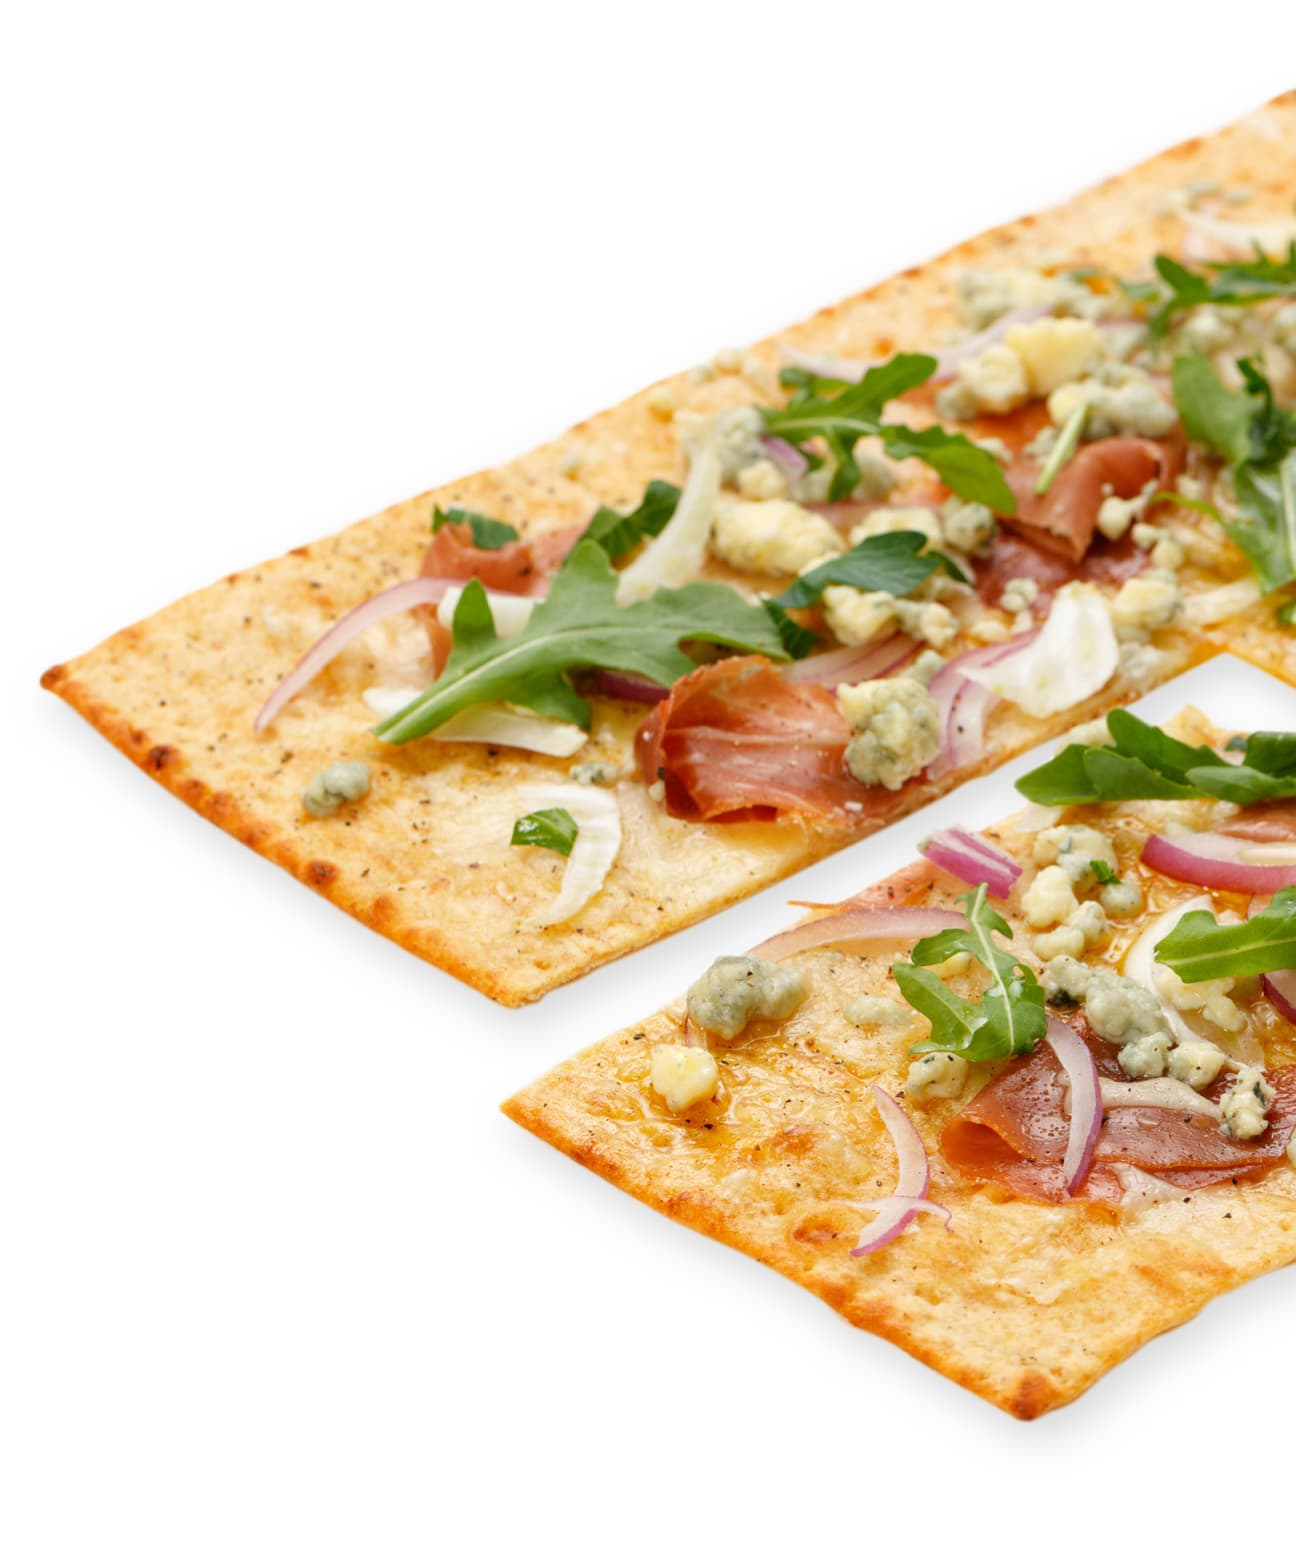 King Design Josephs Bakery Flatbread Lavash Pita Product Food Photography